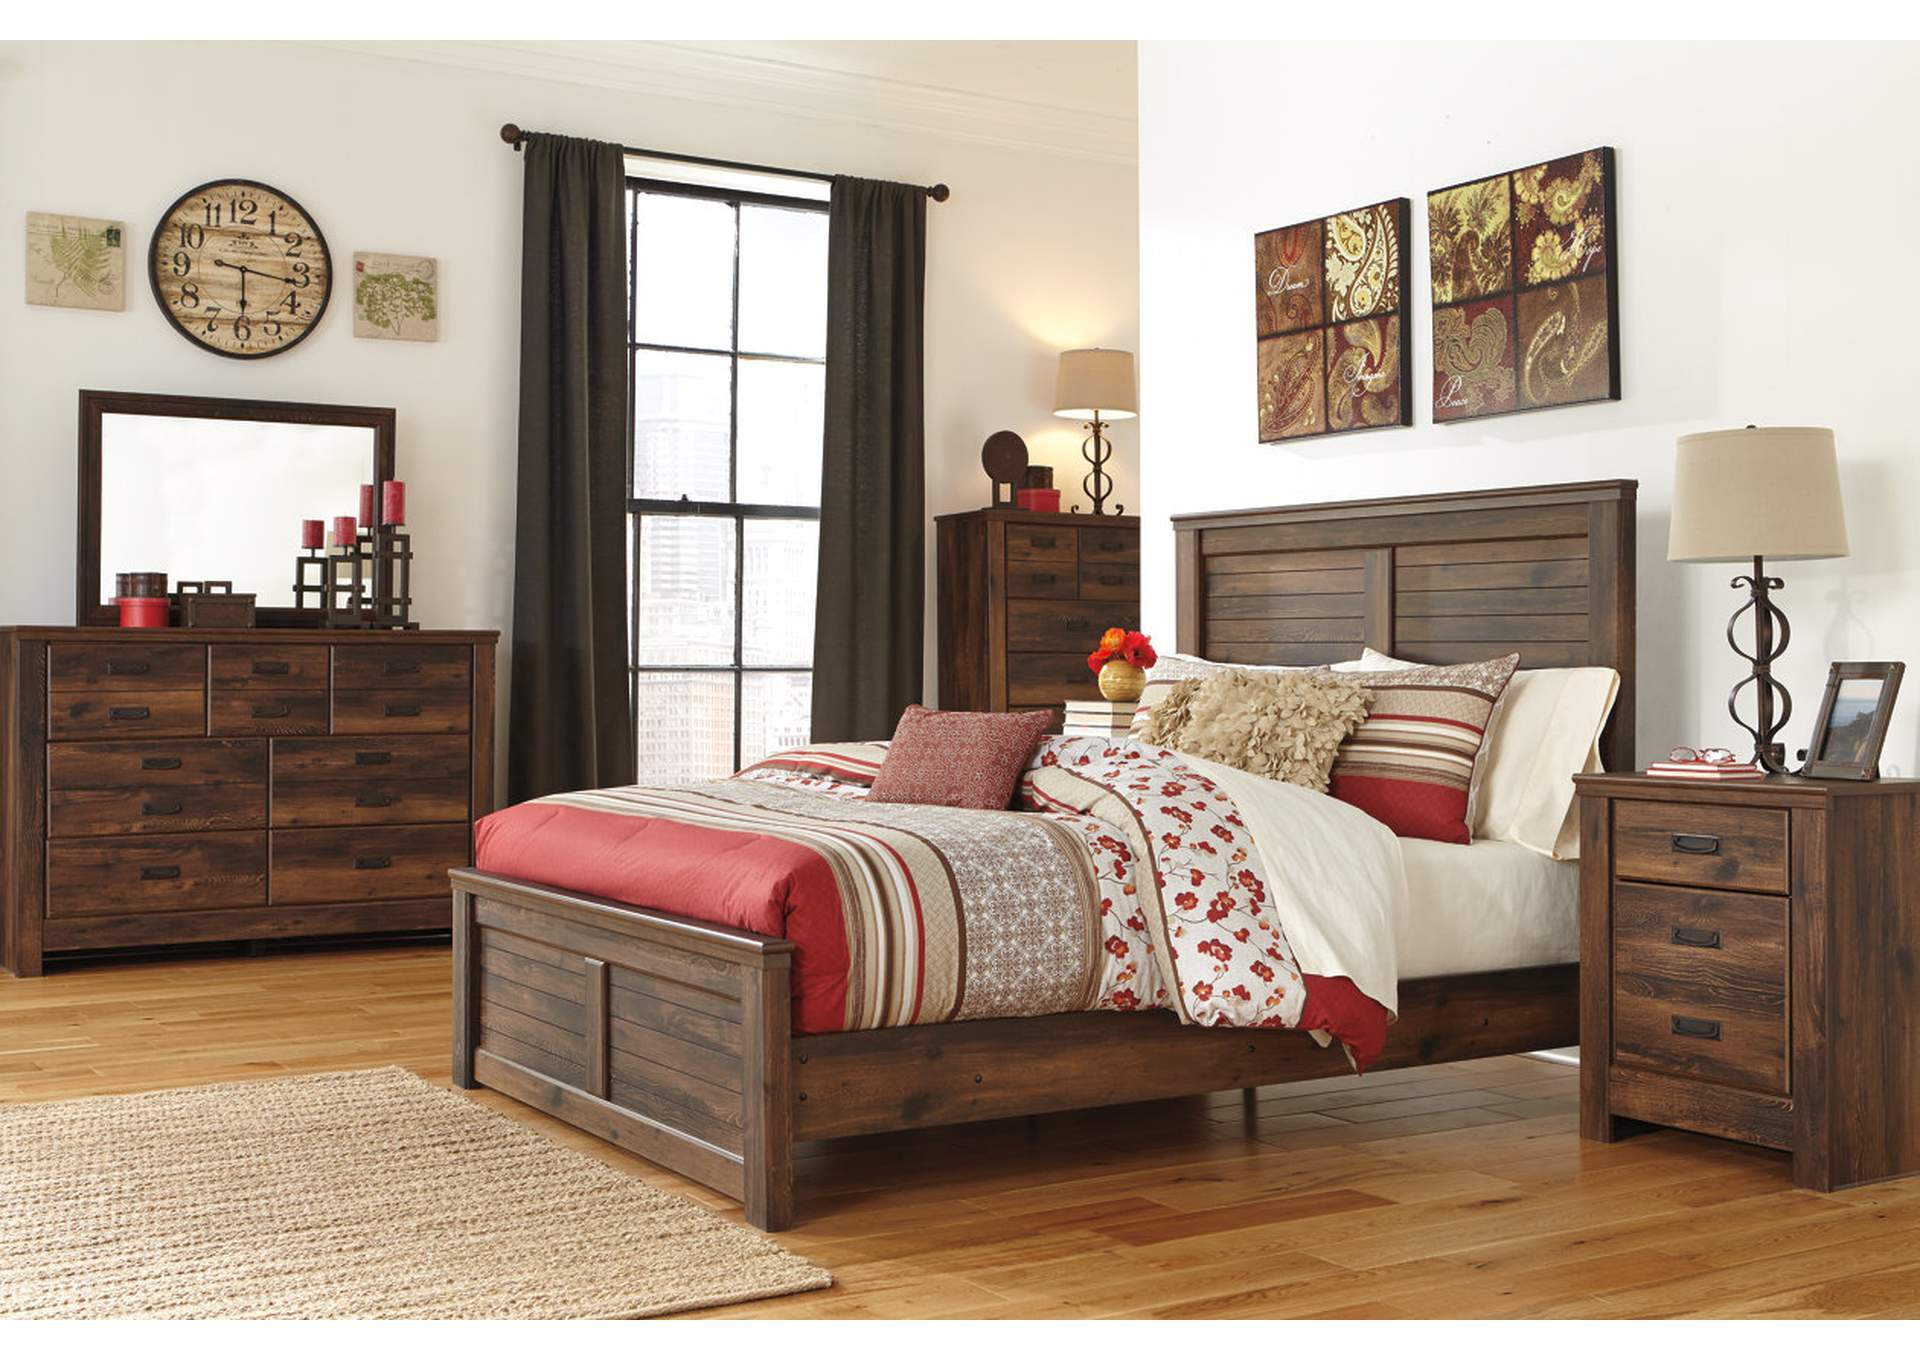 Quinden Queen Panel Bed, Dresser & Mirror,Signature Design By Ashley